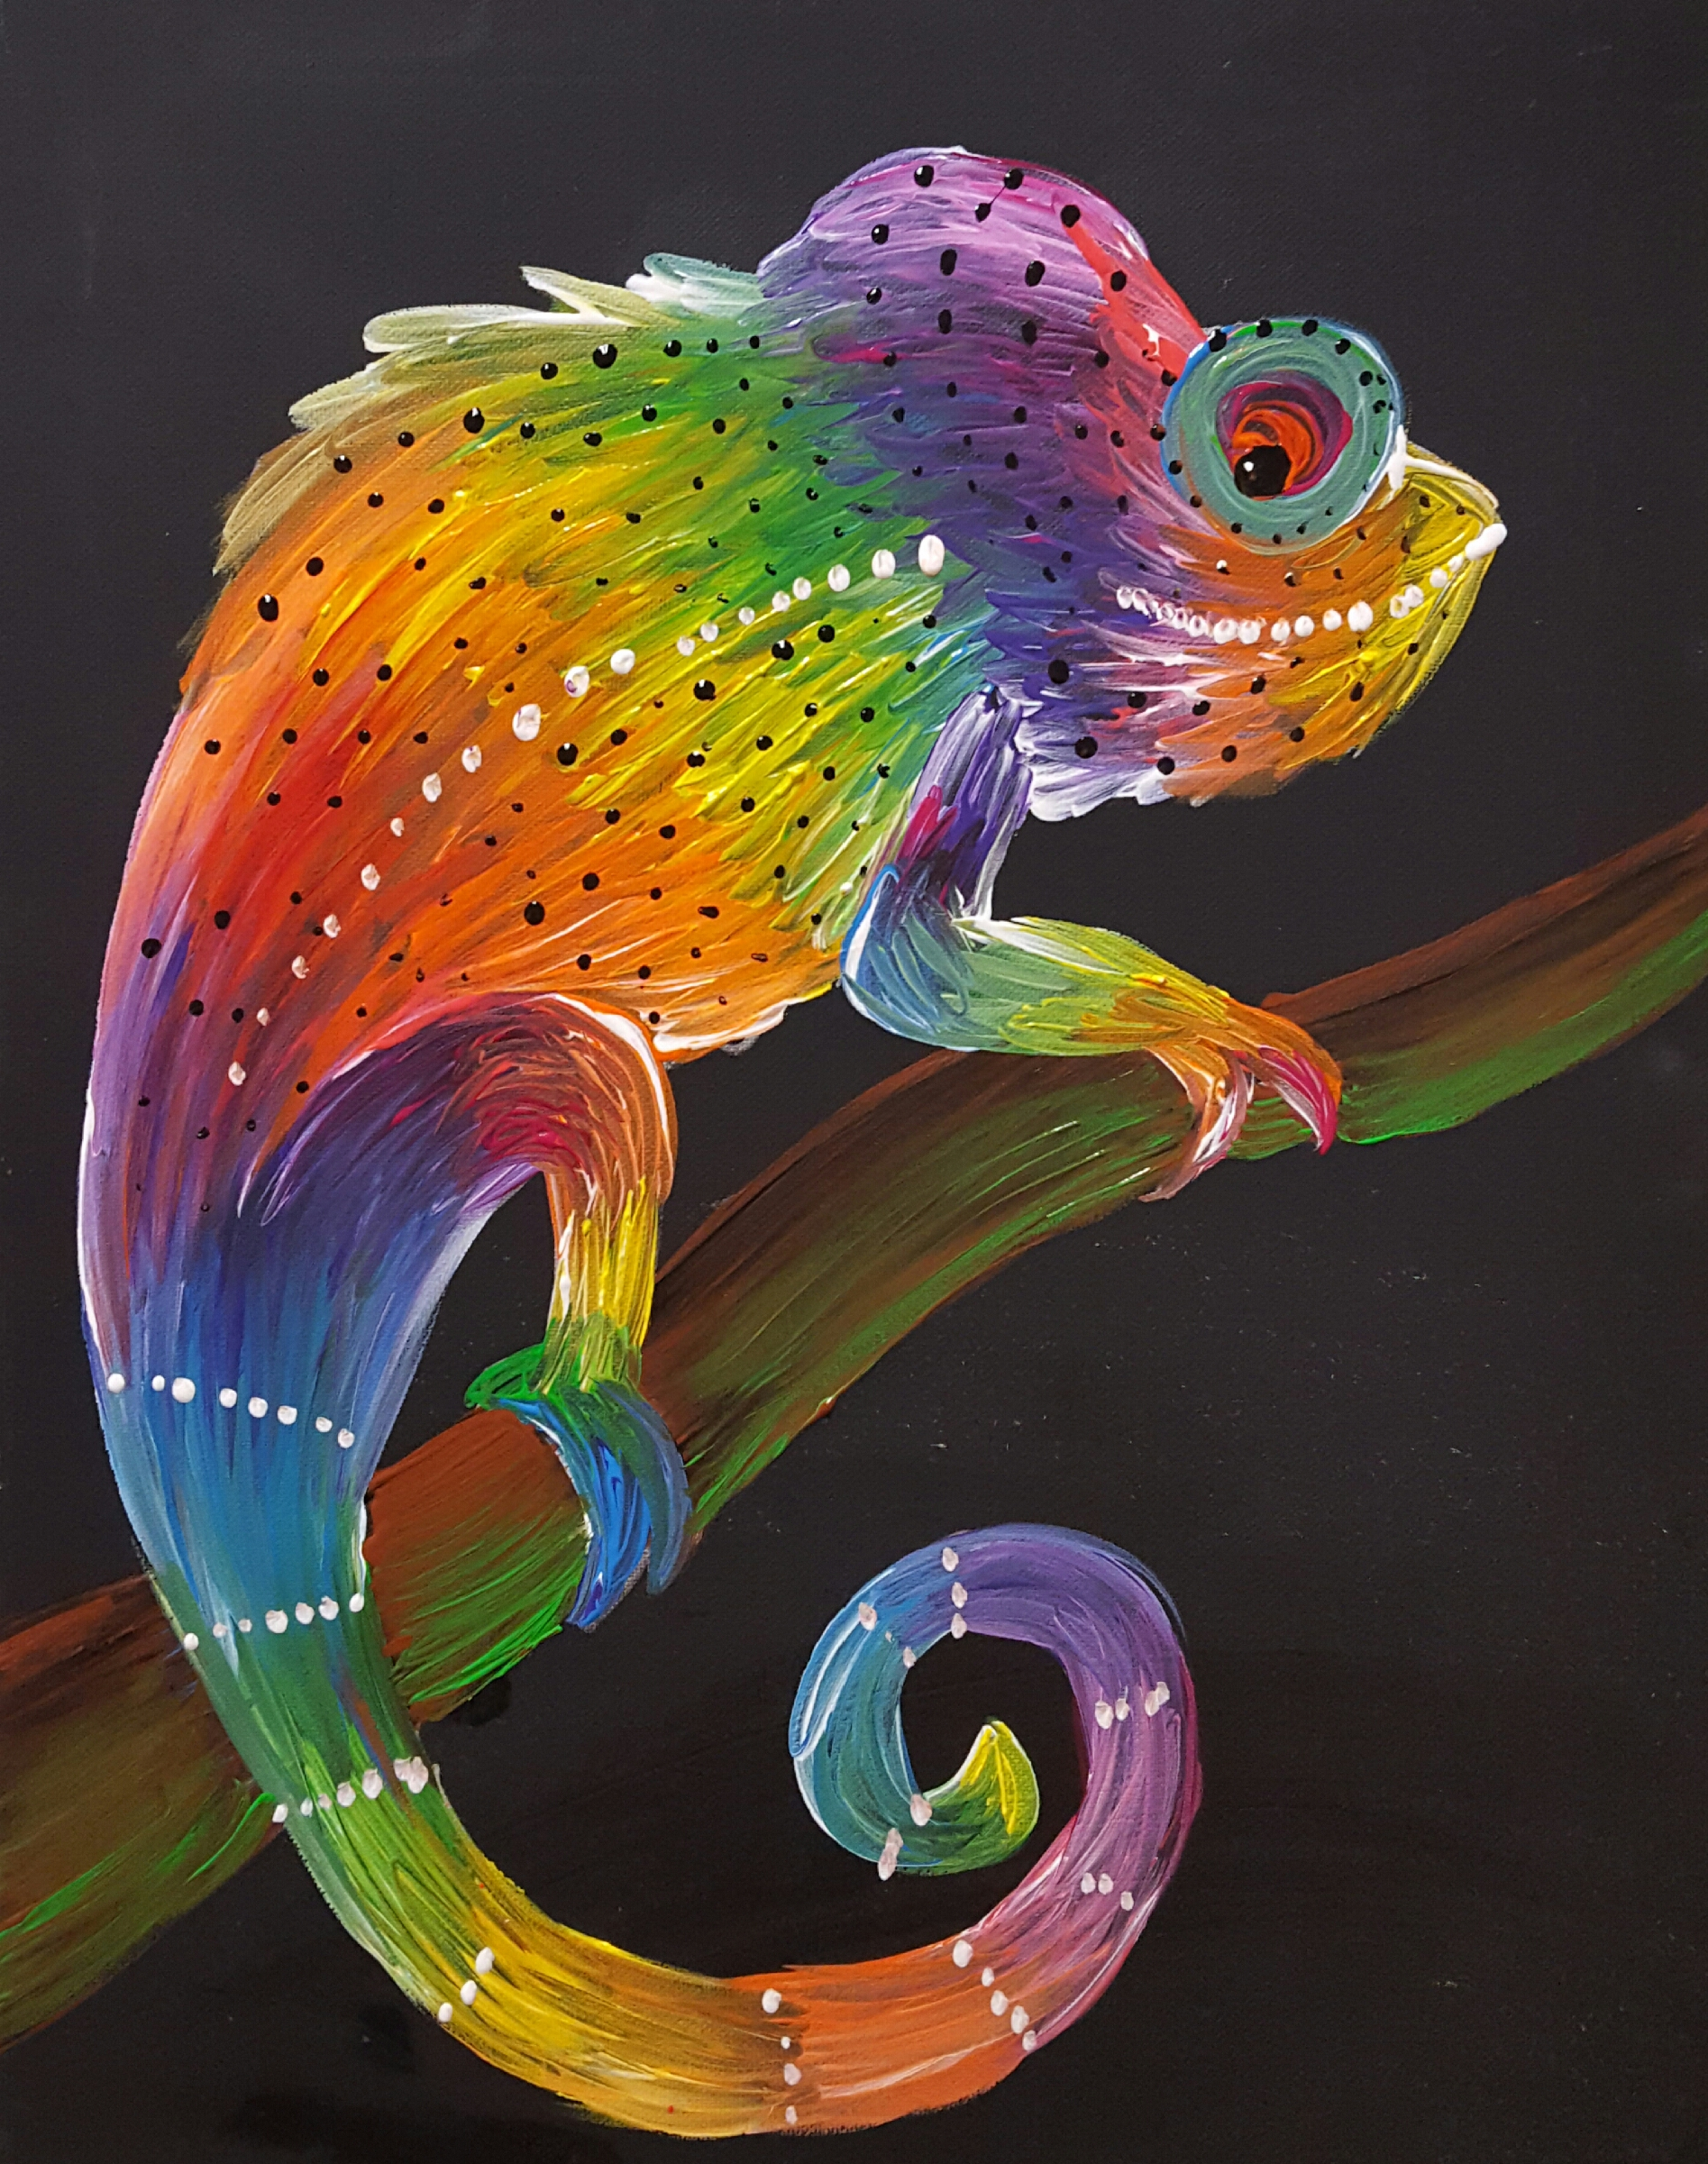 Chameleon- (7 years old and up) 2 hours